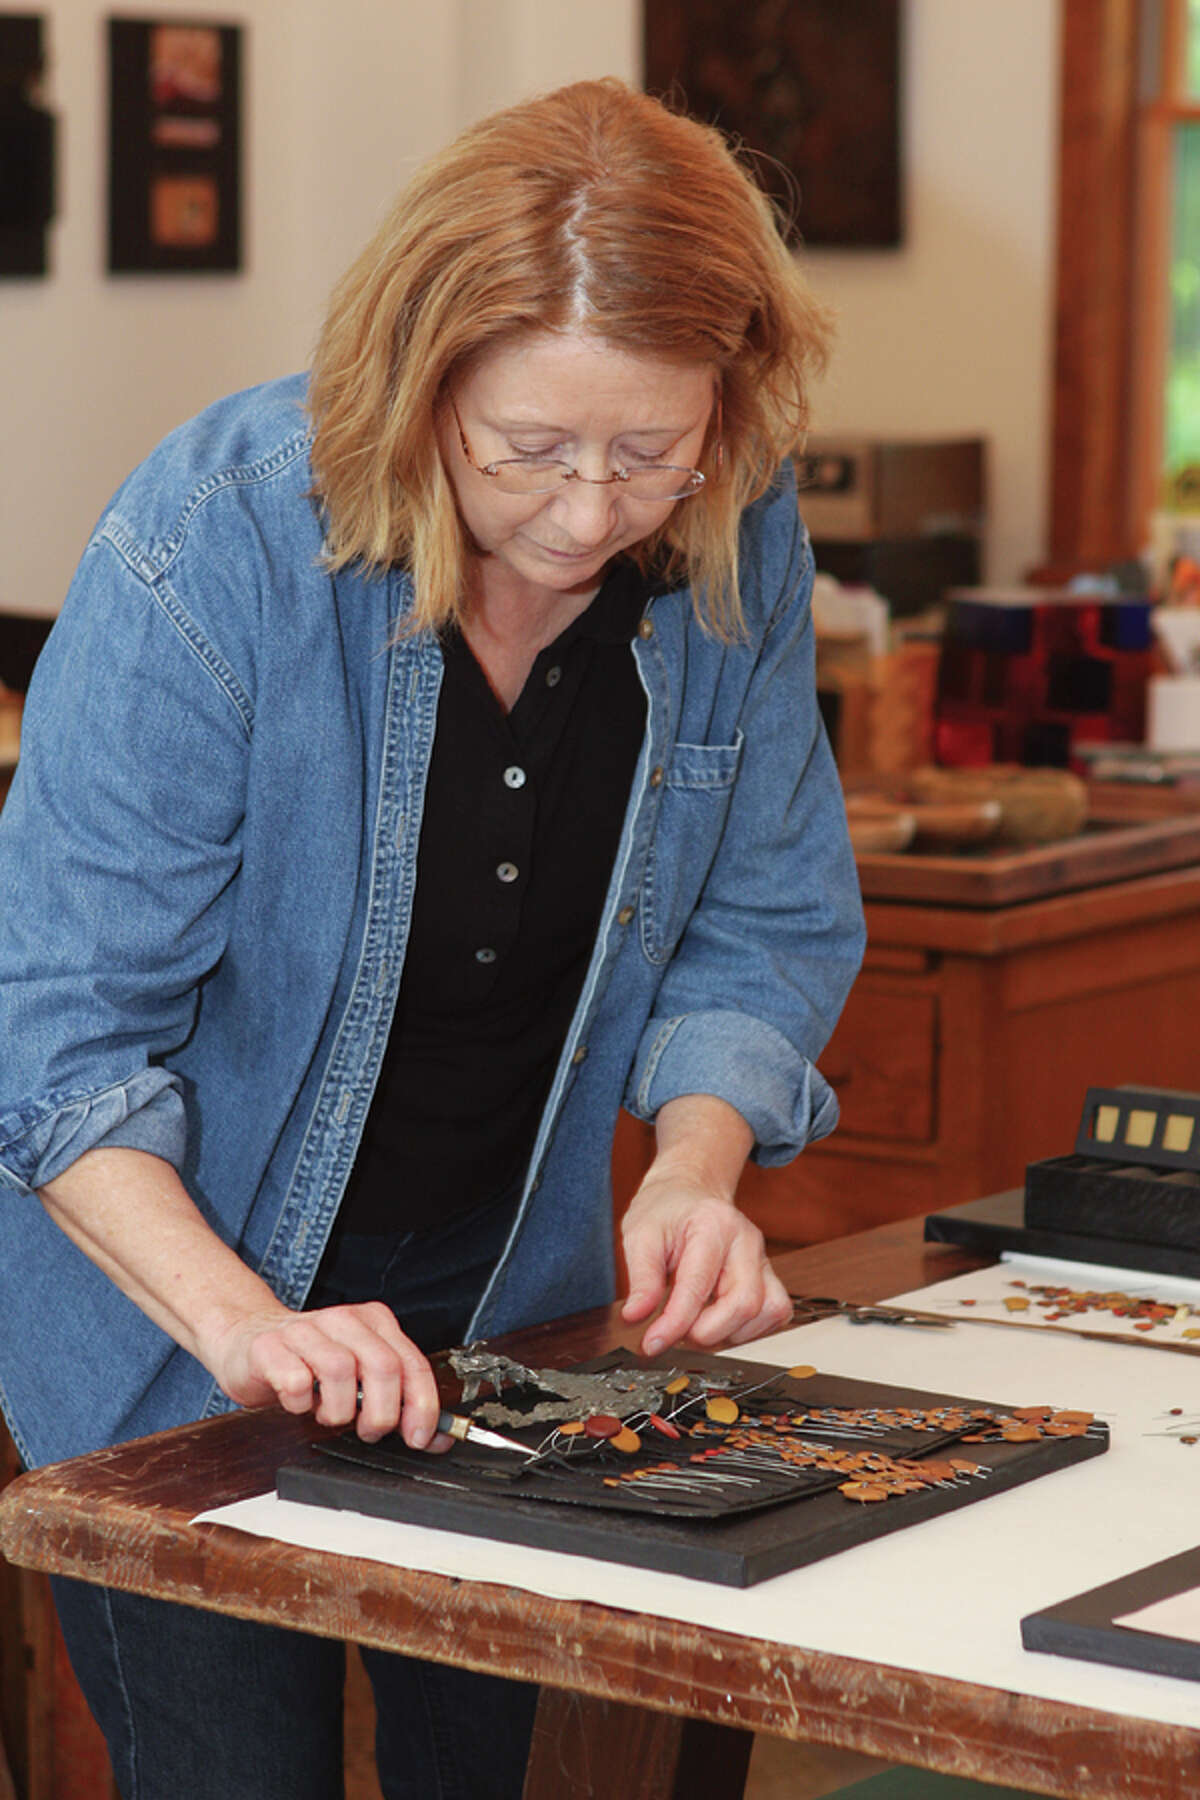 Mary Pat Wager finds inspiration in the nature around her and it shows in her variety of sculptures. (Photos by Krishna Hill/Life@Home) Read the story here